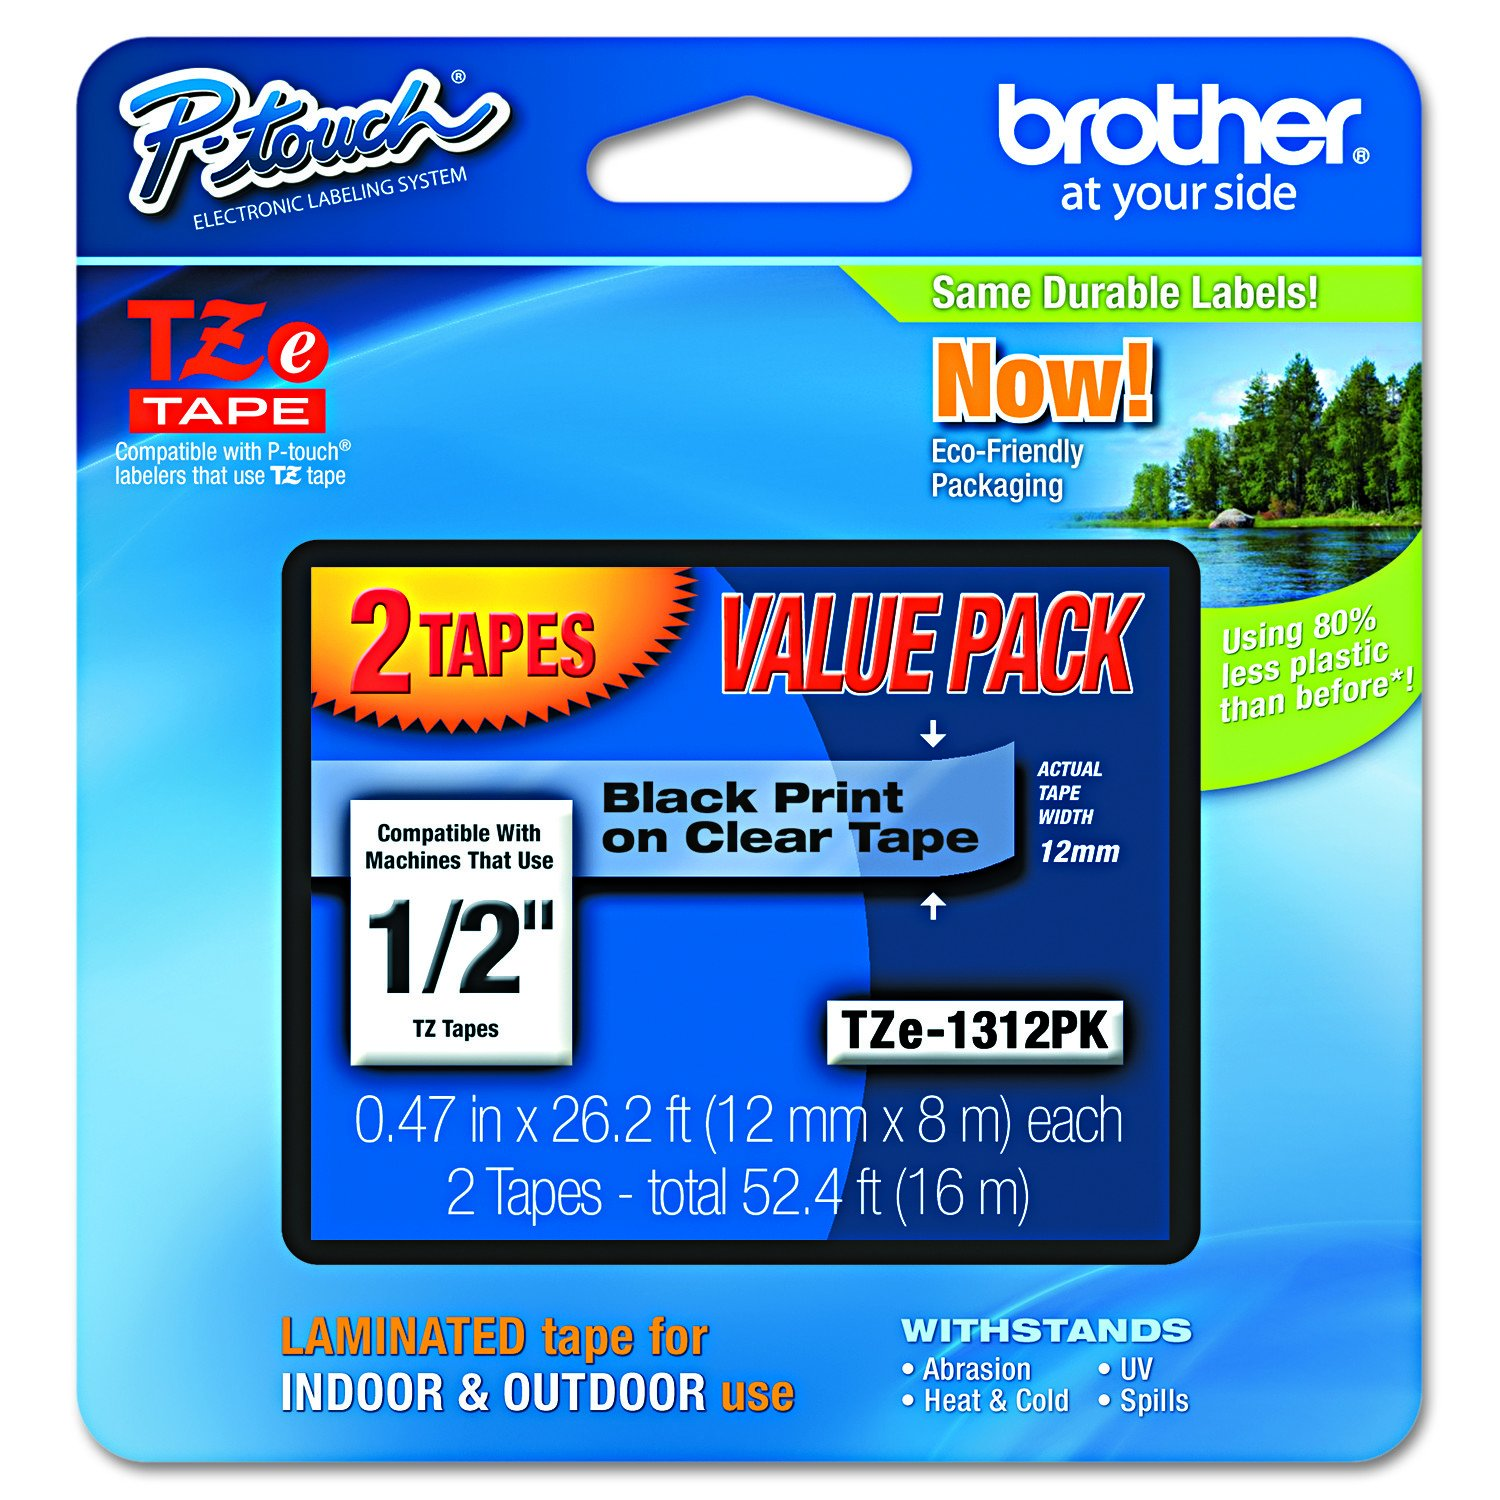 Brother Genuine P-touch TZE-1312PK Tape, 1/2'' (0.47'') Standard Laminated P-touch Tape, Black on Clear, Perfect for Indoor or Outdoor Use, Water Resistant, 26.2 Feet (8M), Two-Pack